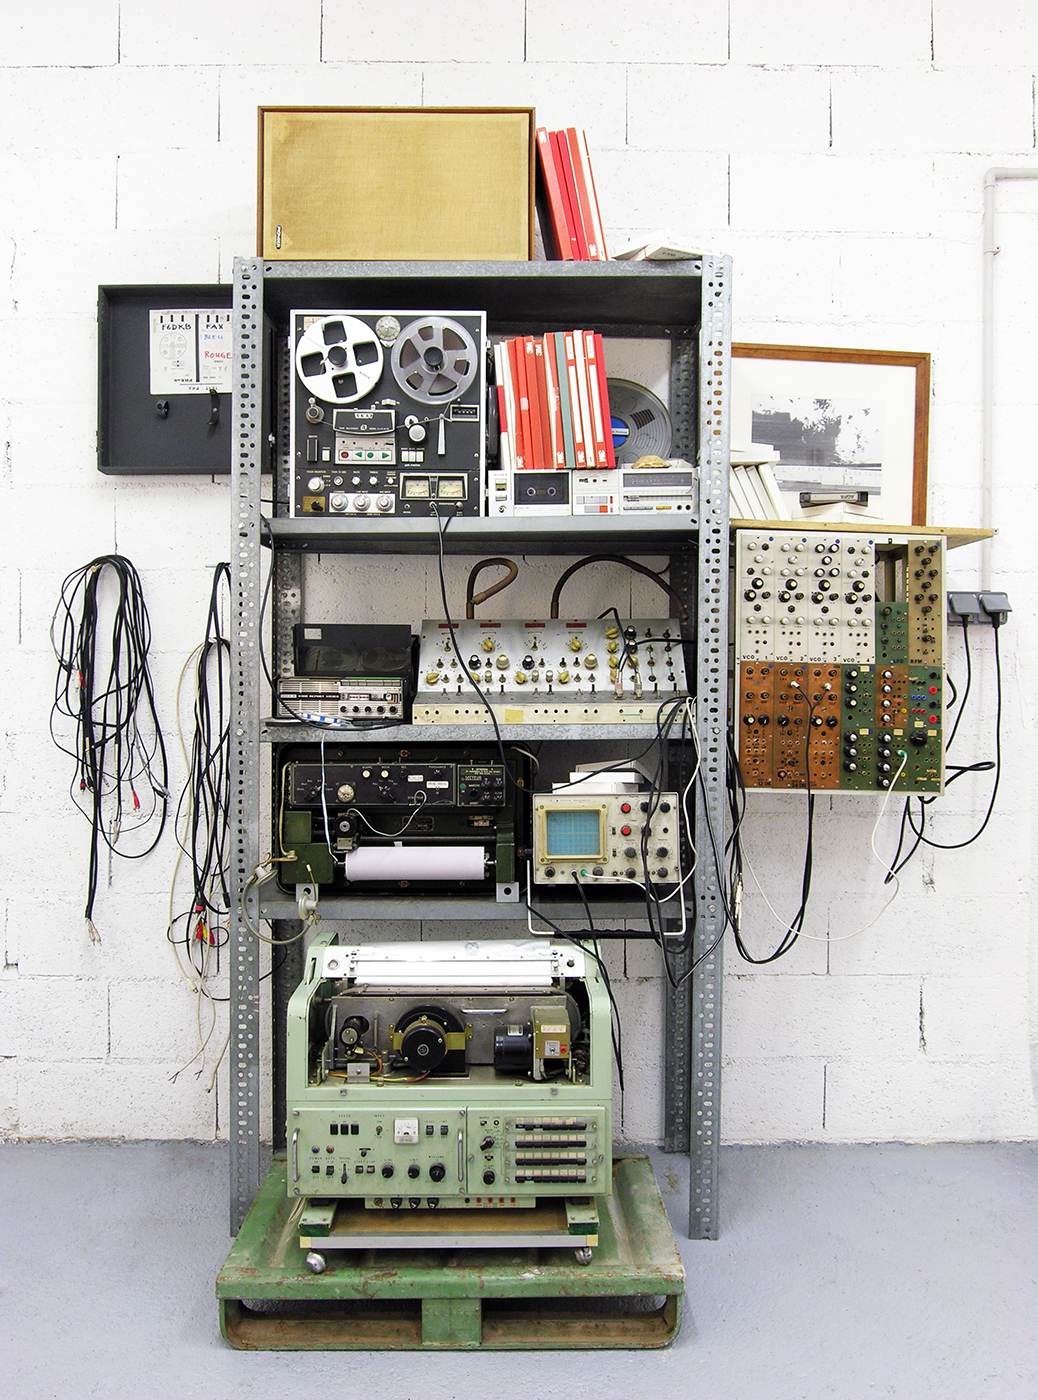 Lars Fredrikson / Estate  - Artist studio for Sound installations & Fax pieces